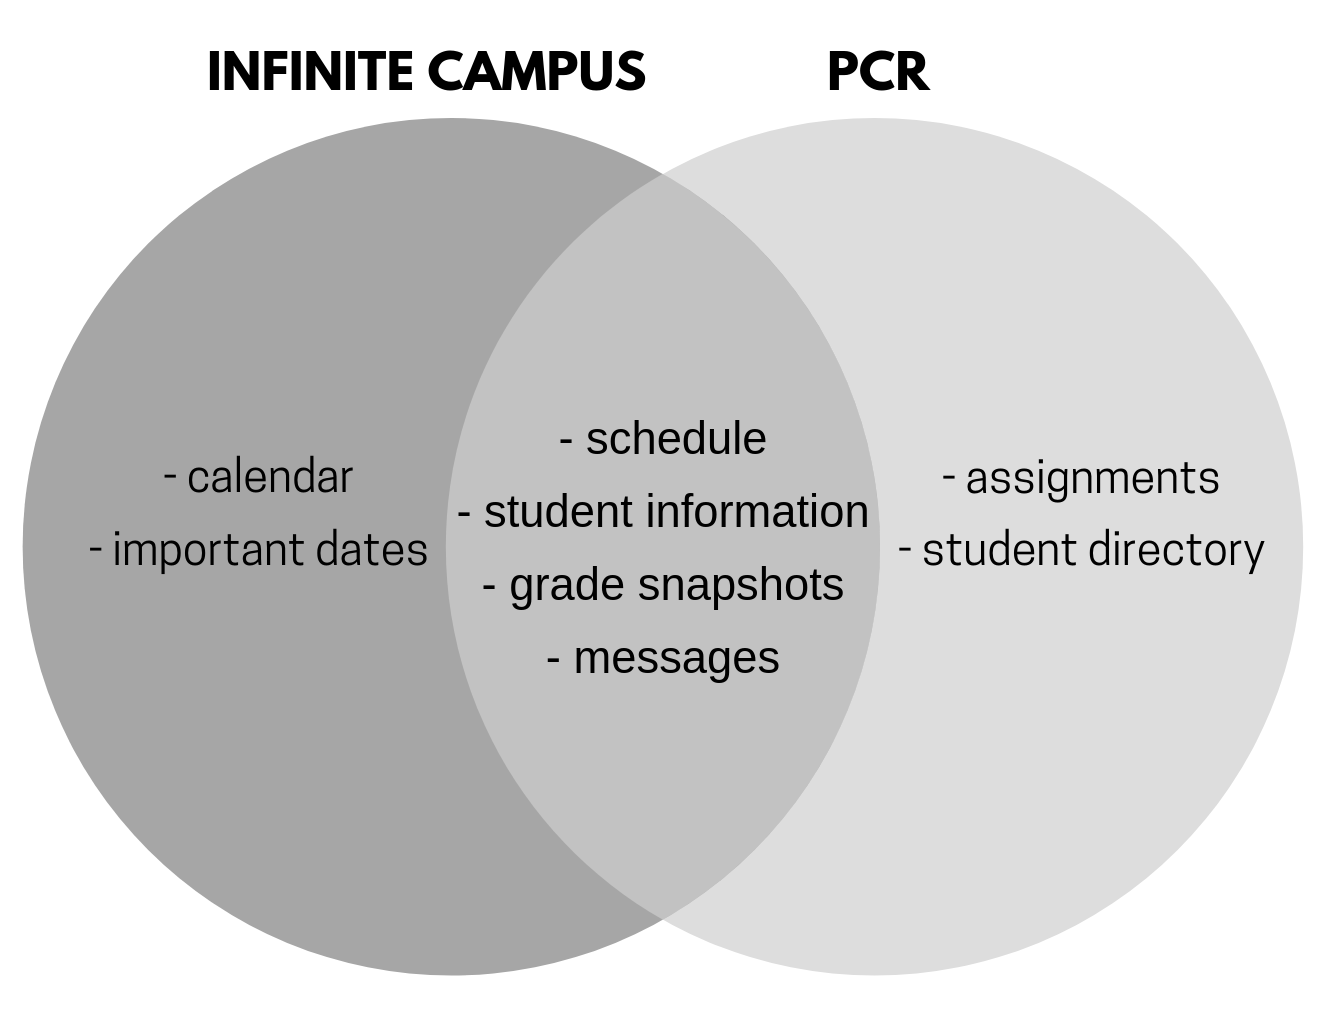 With the new system, Infinite Campus and Schoology will both work together to replace PCR. Assignments will be accessed through Schoology, which is a major change from previous years.